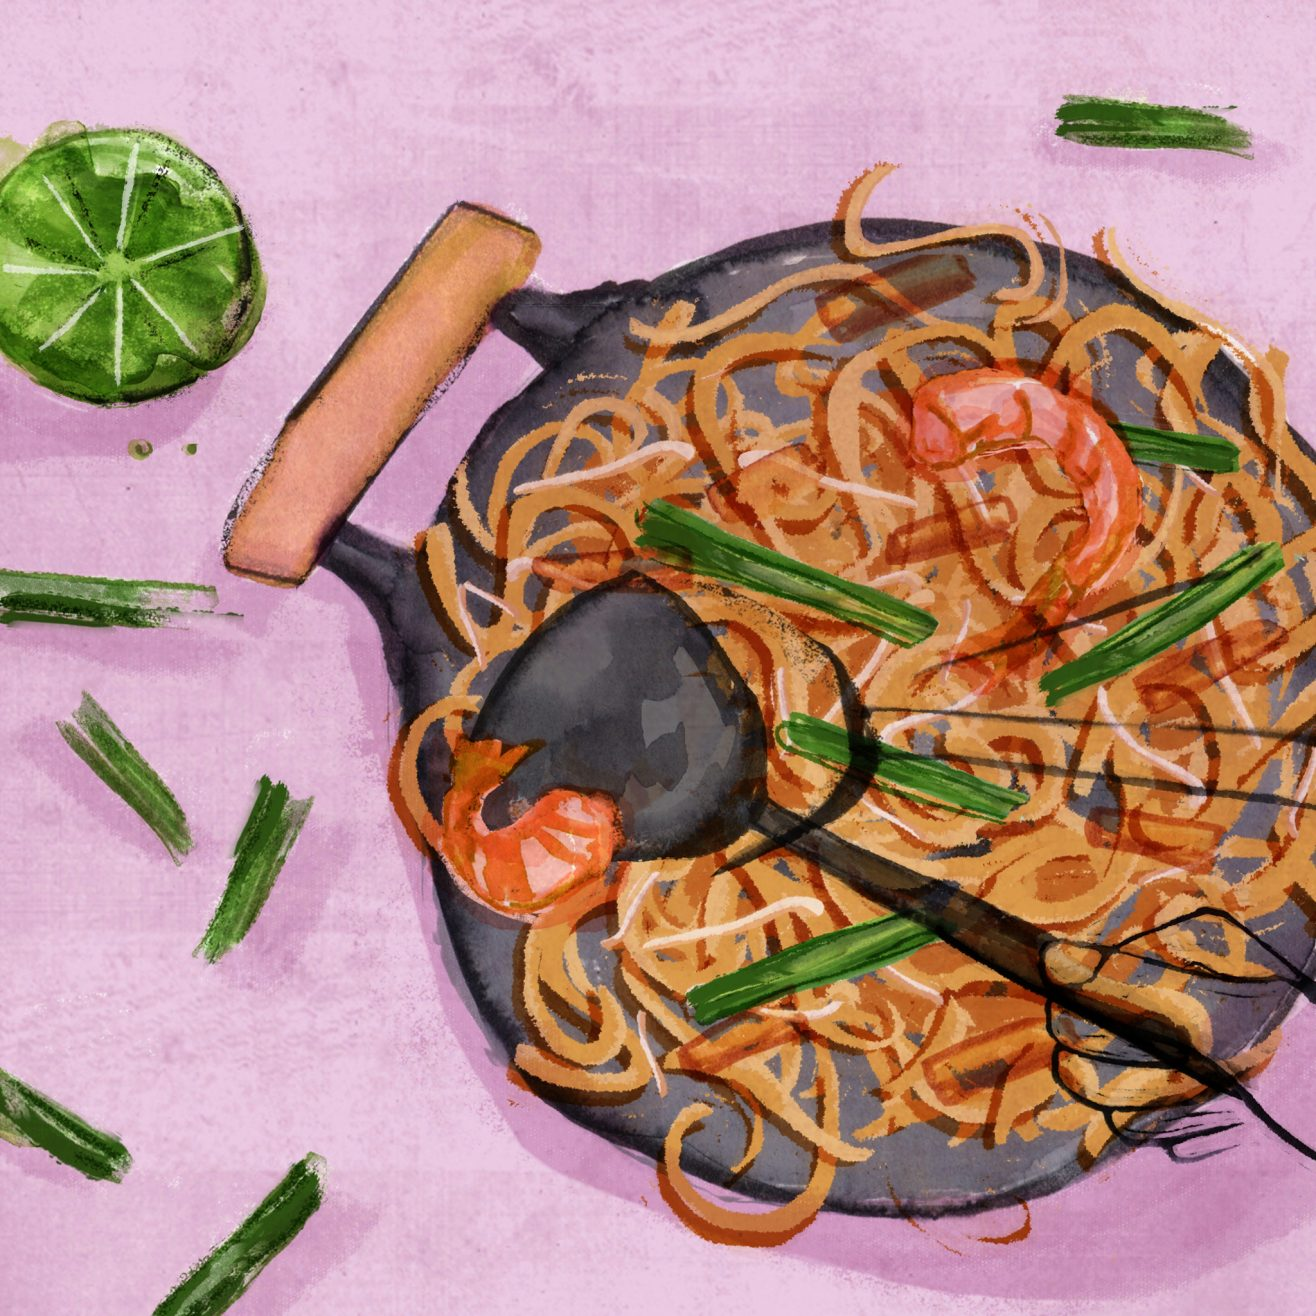 Illustration of shrimp and noodles in a wok